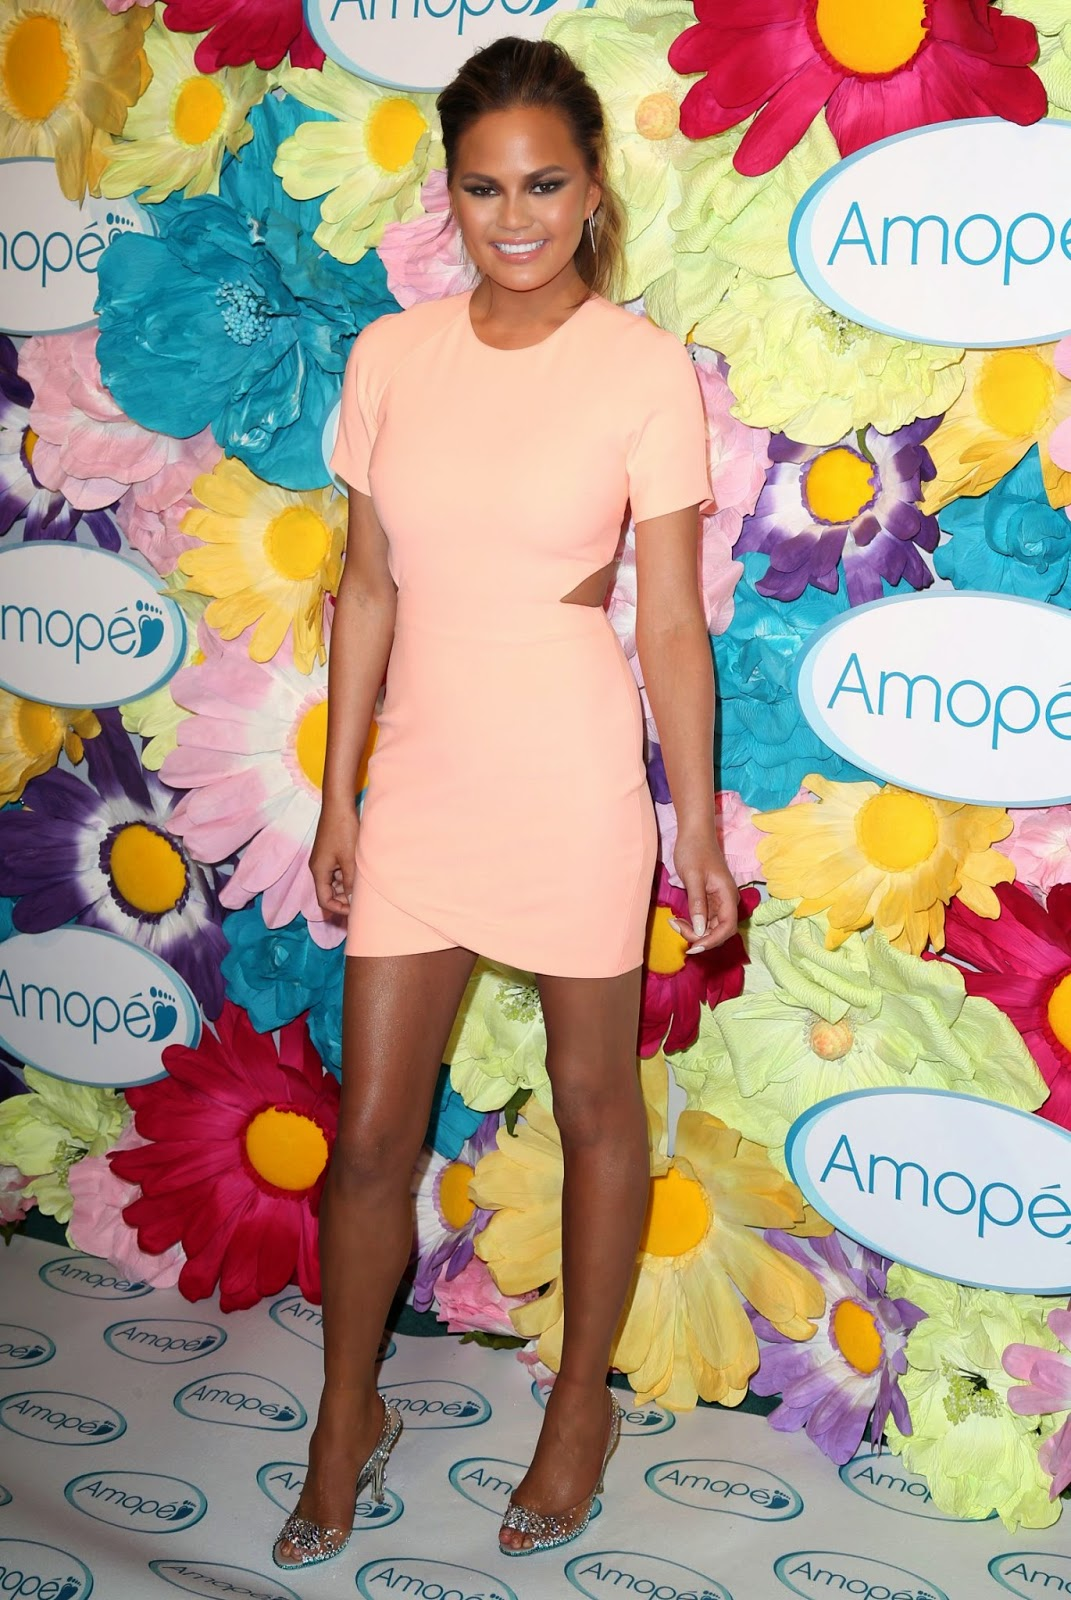 """Model, Actress @ Chrissy Teigen at """"Glass-Slipper-Ready"""" Pedicure Event in NYC"""